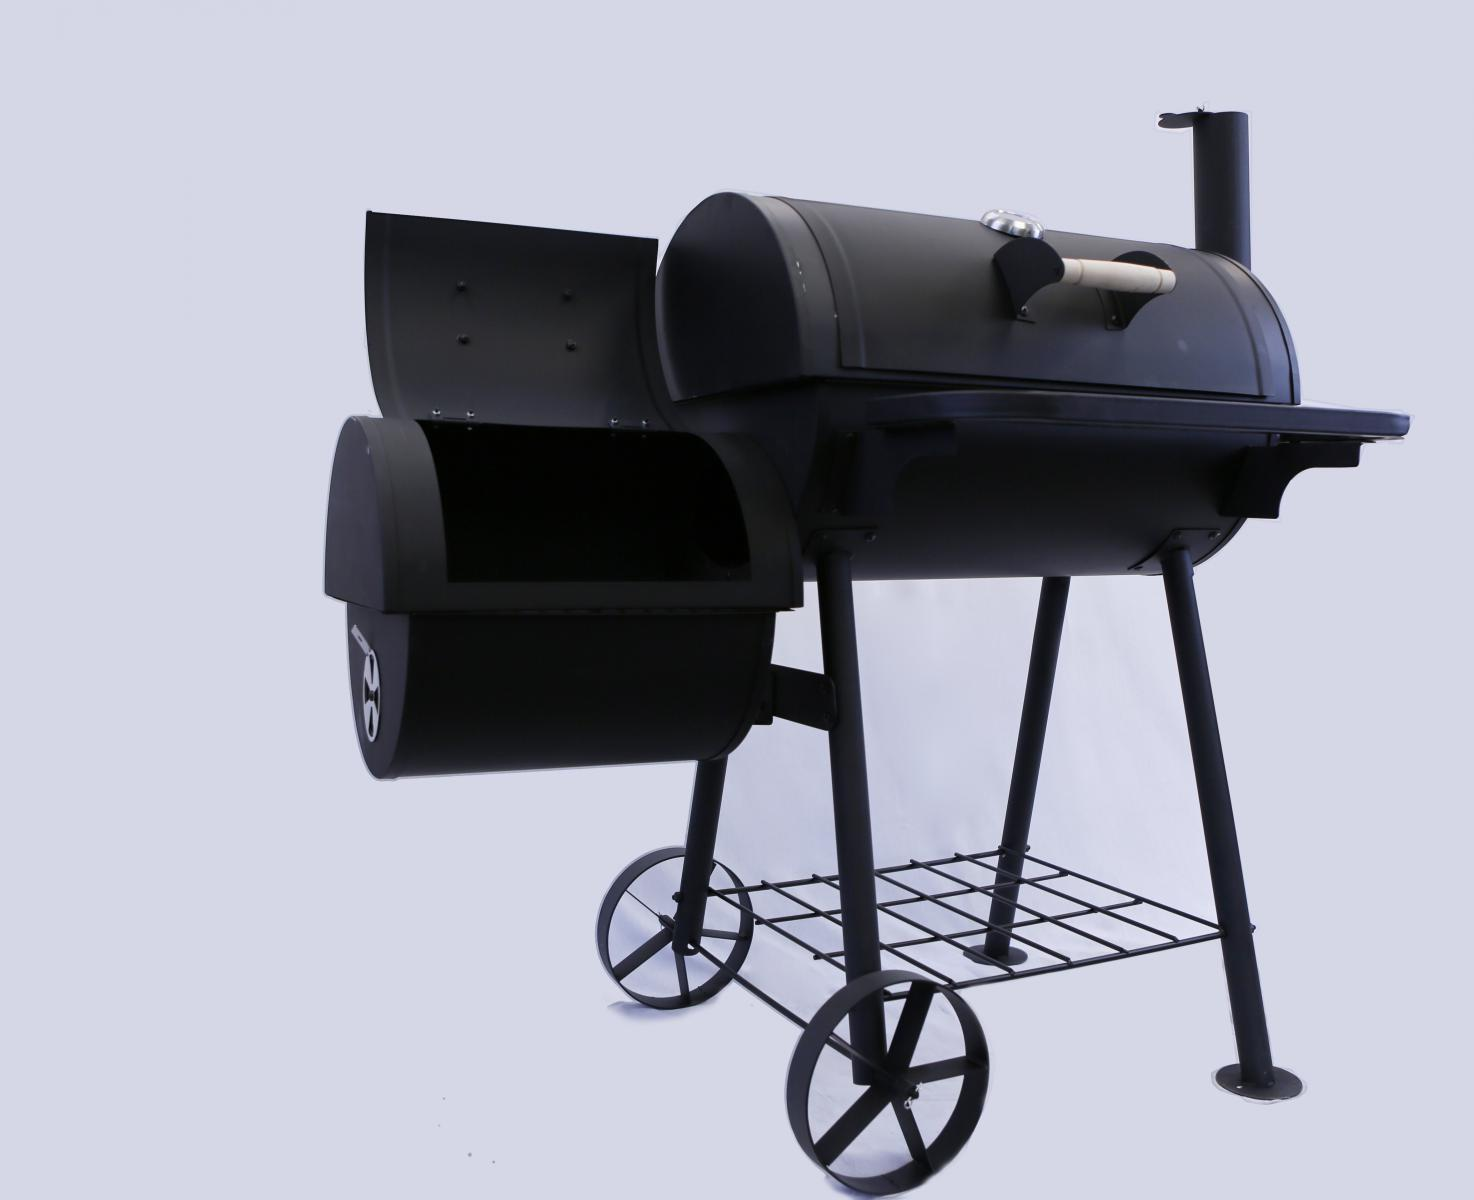 black superb bbq charcoal grill barbecue smoker garden outdoor cooking steel ebay. Black Bedroom Furniture Sets. Home Design Ideas